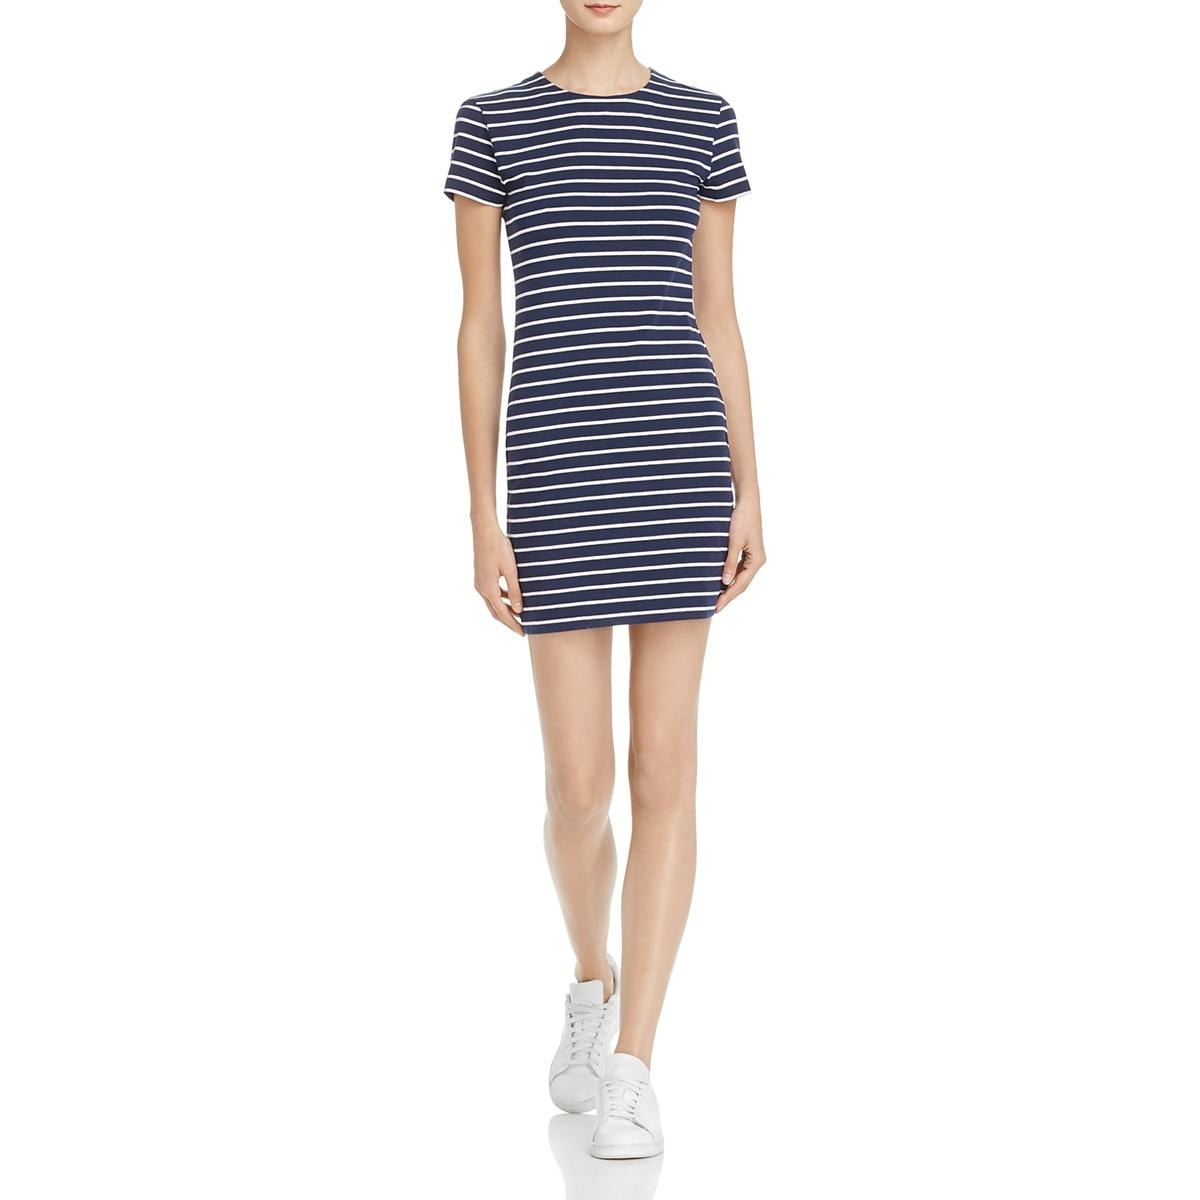 e2626eb68e0 Shop French Connection Womens T-Shirt Dress Short Sleeves Above Knee - Free  Shipping On Orders Over  45 - Overstock - 22817065